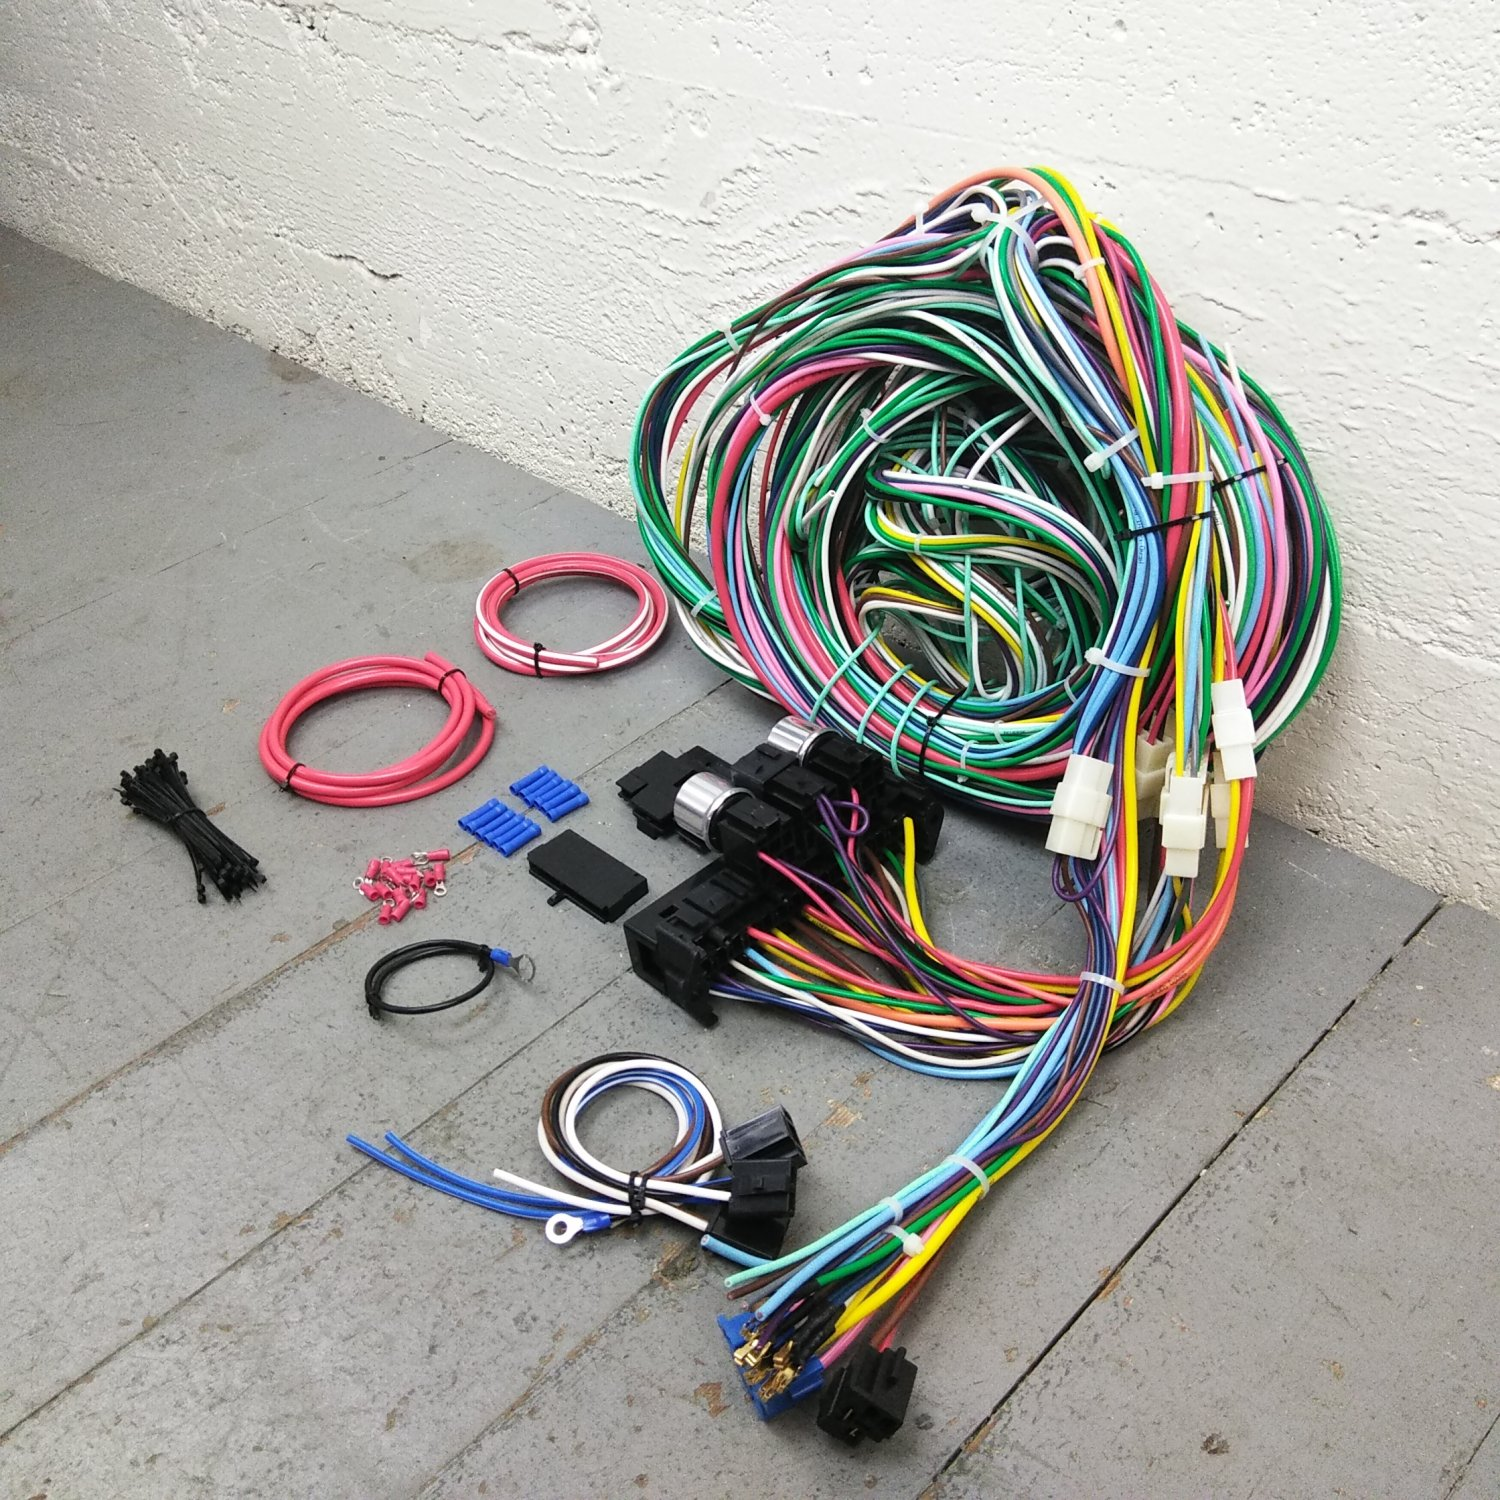 hight resolution of 1964 1967 chevrolet wire harness upgrade kit fits painless fuse 1959 chevrolet impala painless performance wiring harness photo 2